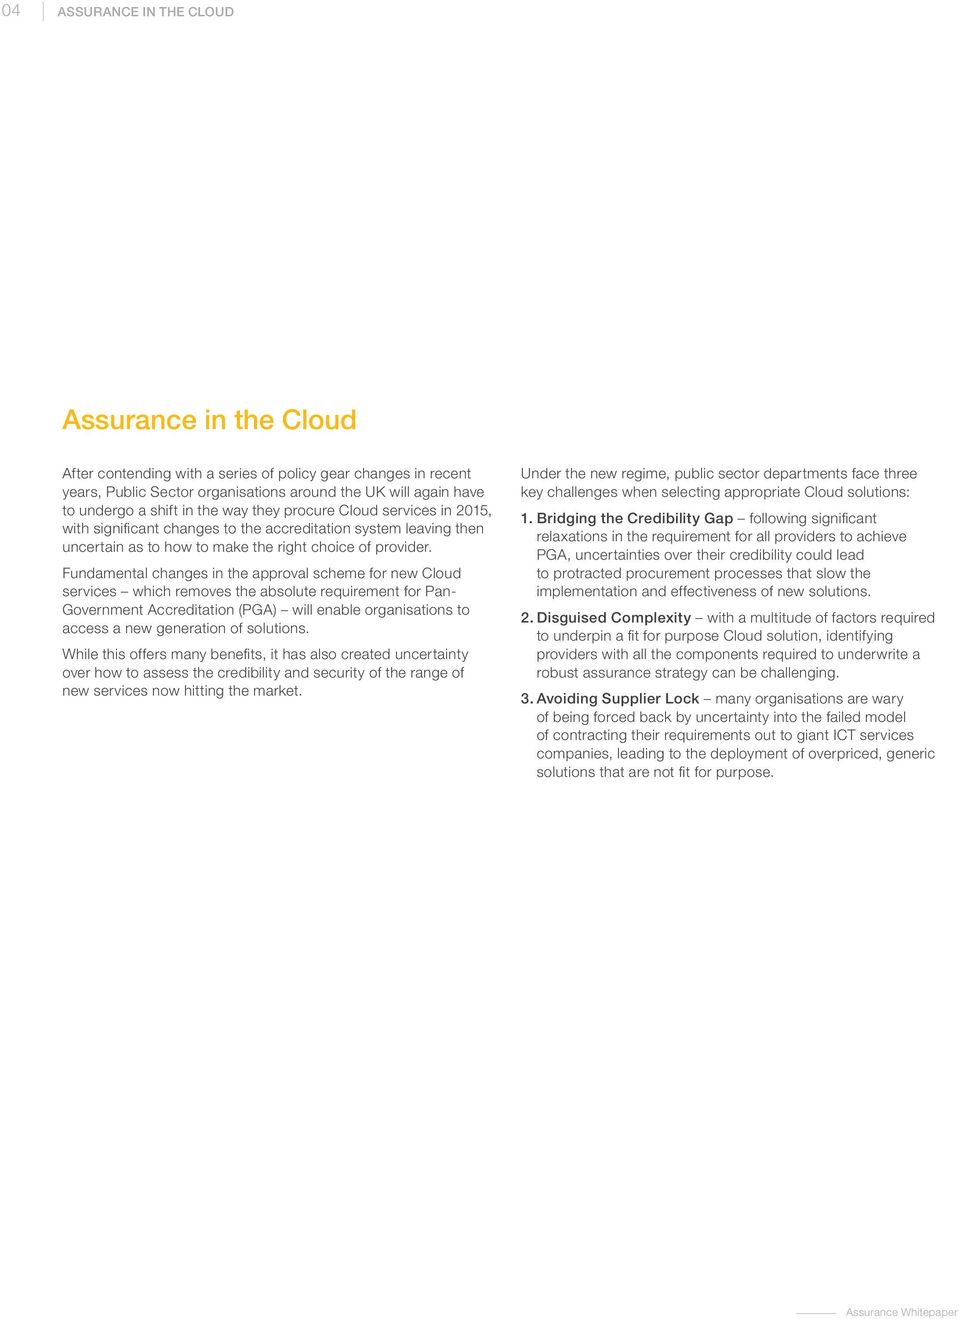 Fundamental changes in the approval scheme for new Cloud services which removes the absolute requirement for Pan- Government Accreditation (PGA) will enable organisations to access a new generation